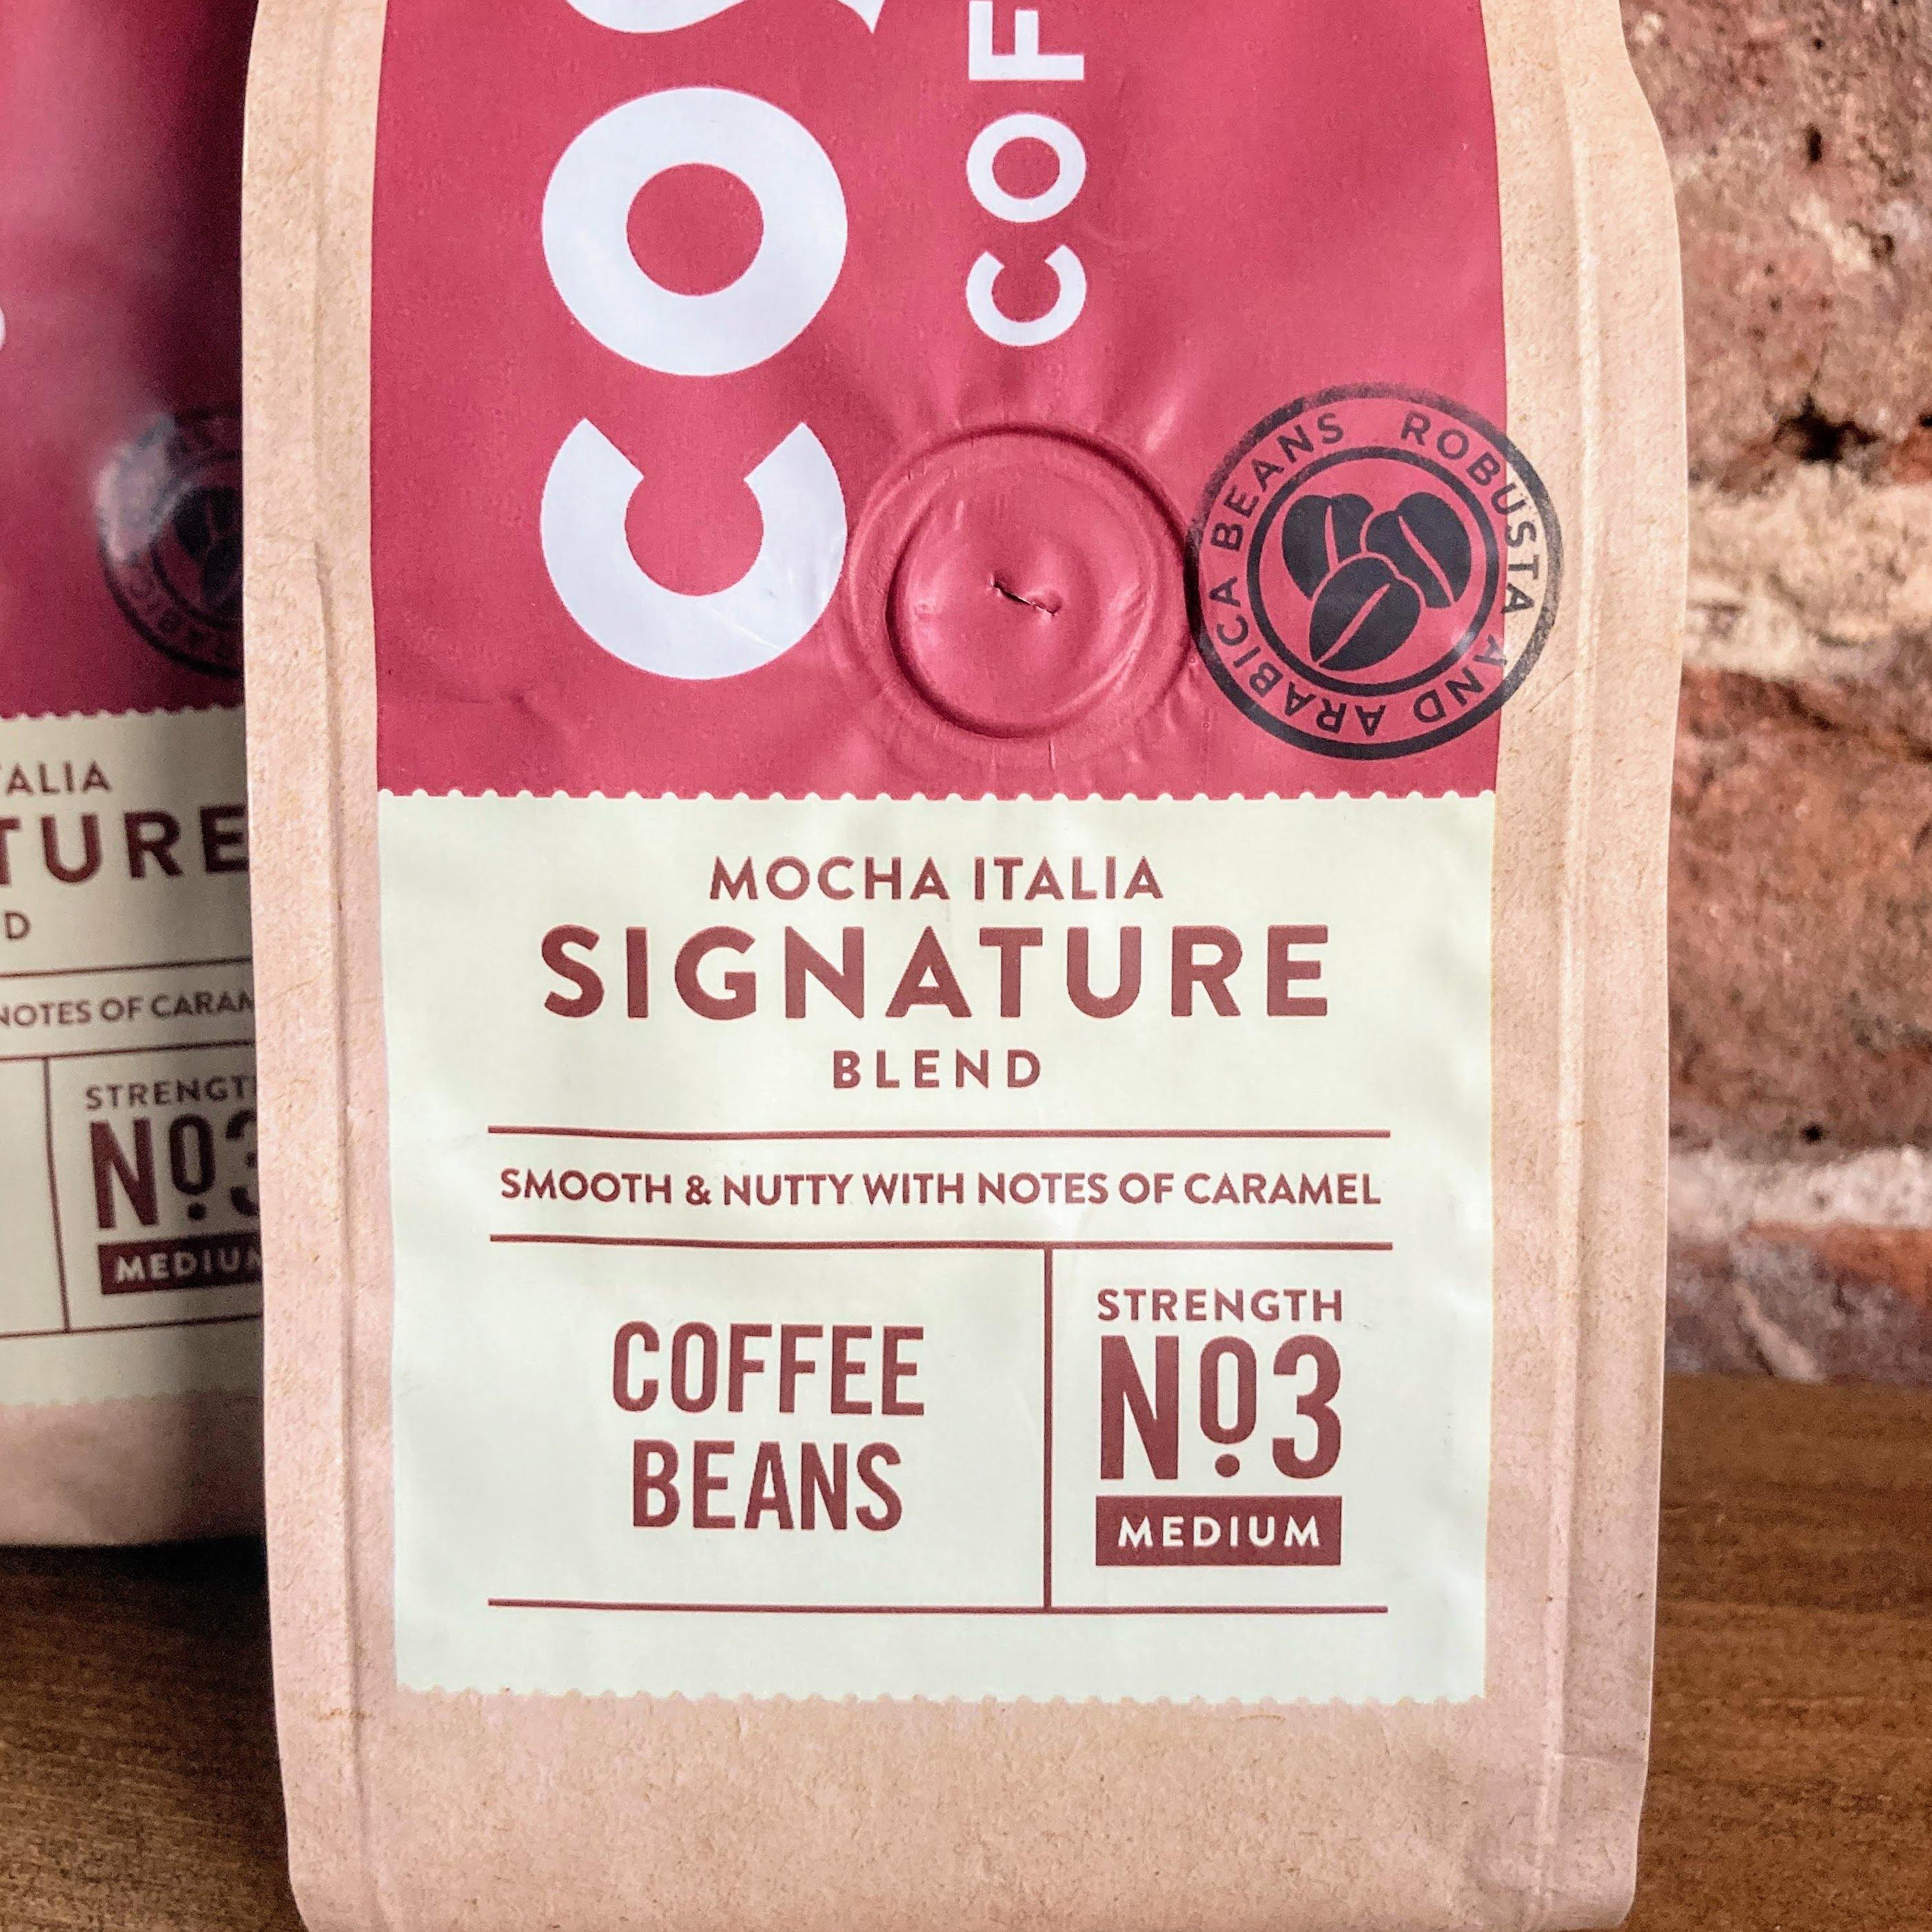 Costa Signature Blend Coffee Beans 3 pack - Mocha Italia Signature Blend | 600g - Ratton Pantry